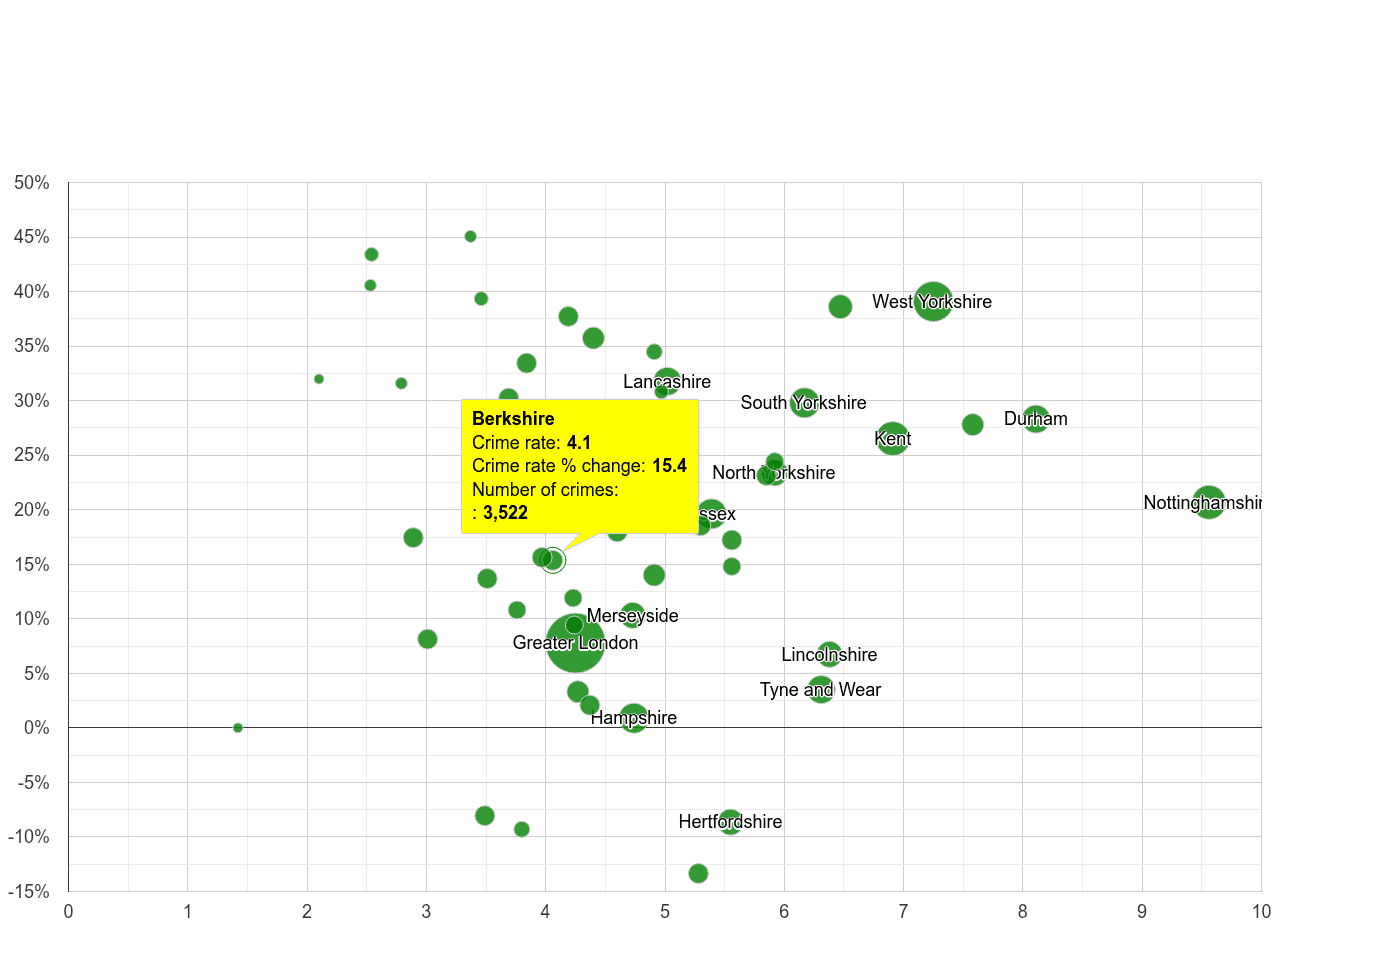 Berkshire shoplifting crime rate compared to other counties